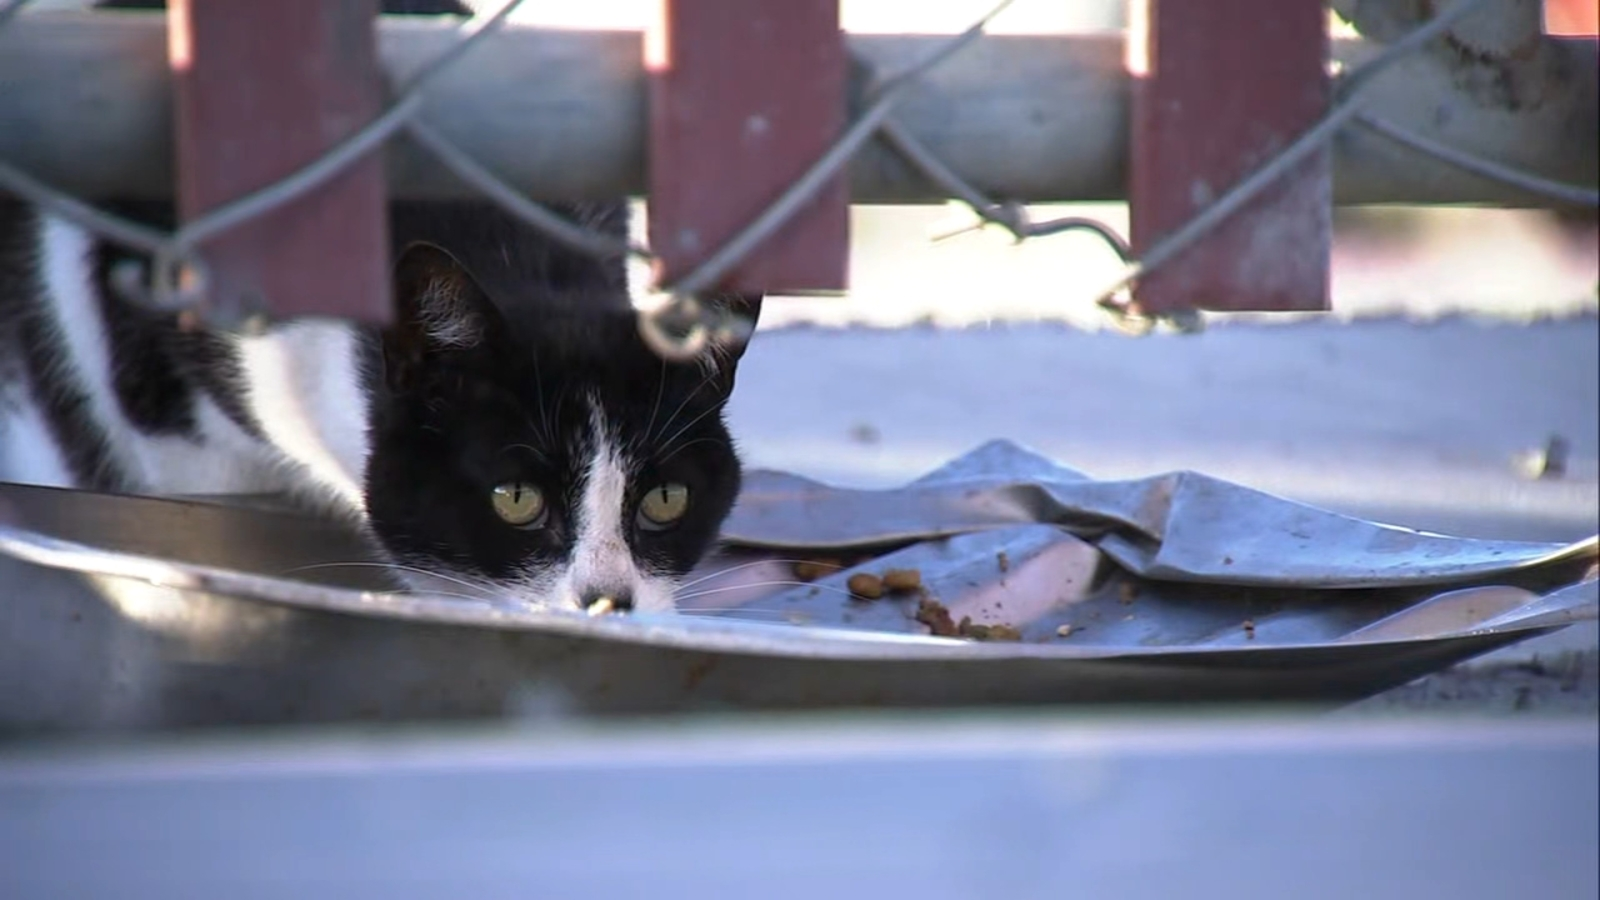 'It's a mystery': Feral cats in SF colony turn up with unexplained severed legs